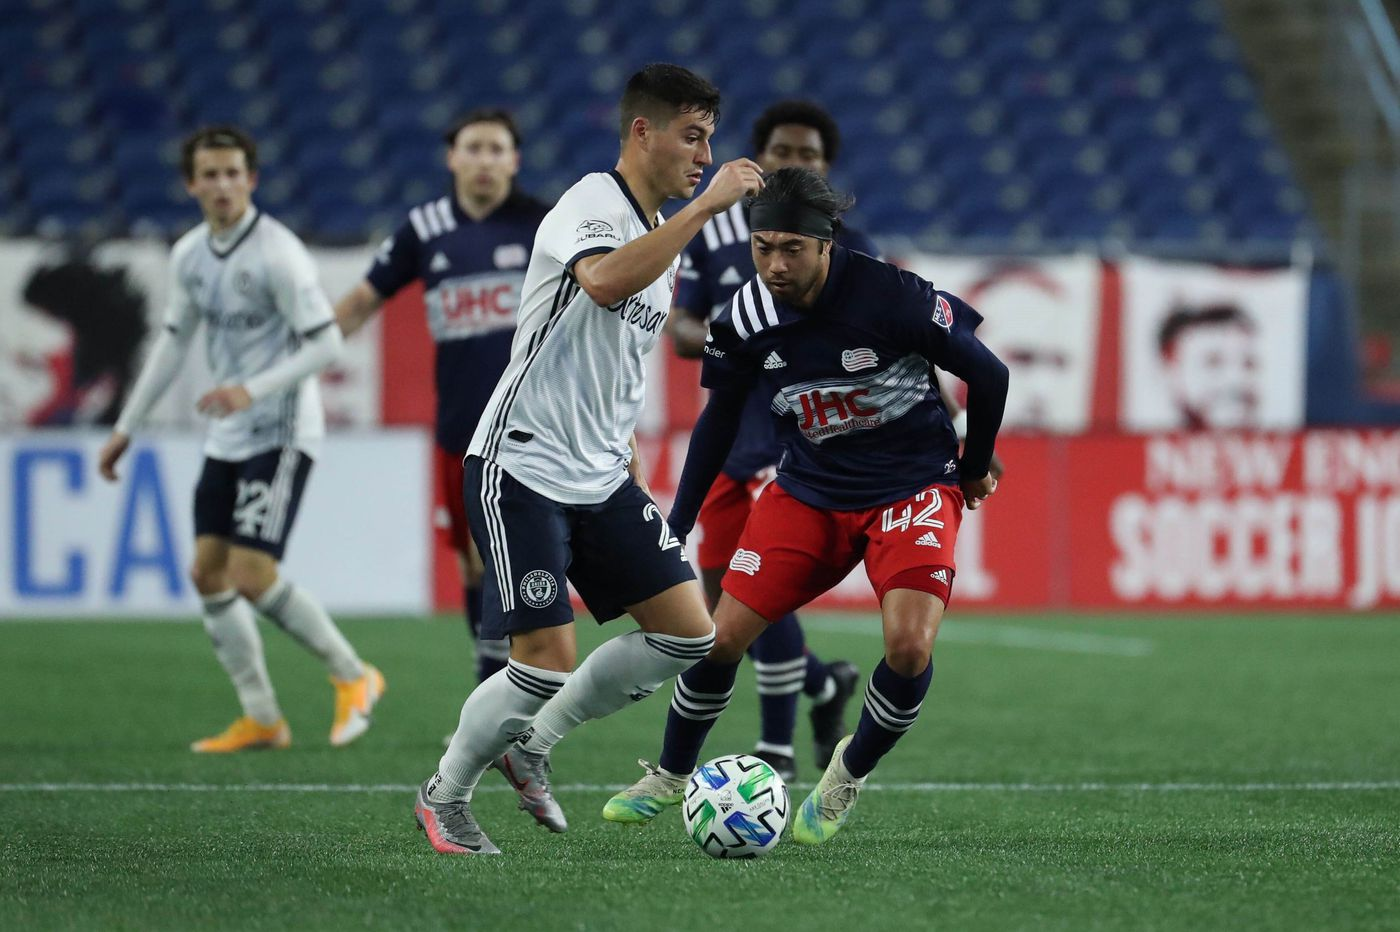 Union edge New England Revolution, 2-1, on Anthony Fontana's goal and Andre Blake's saves